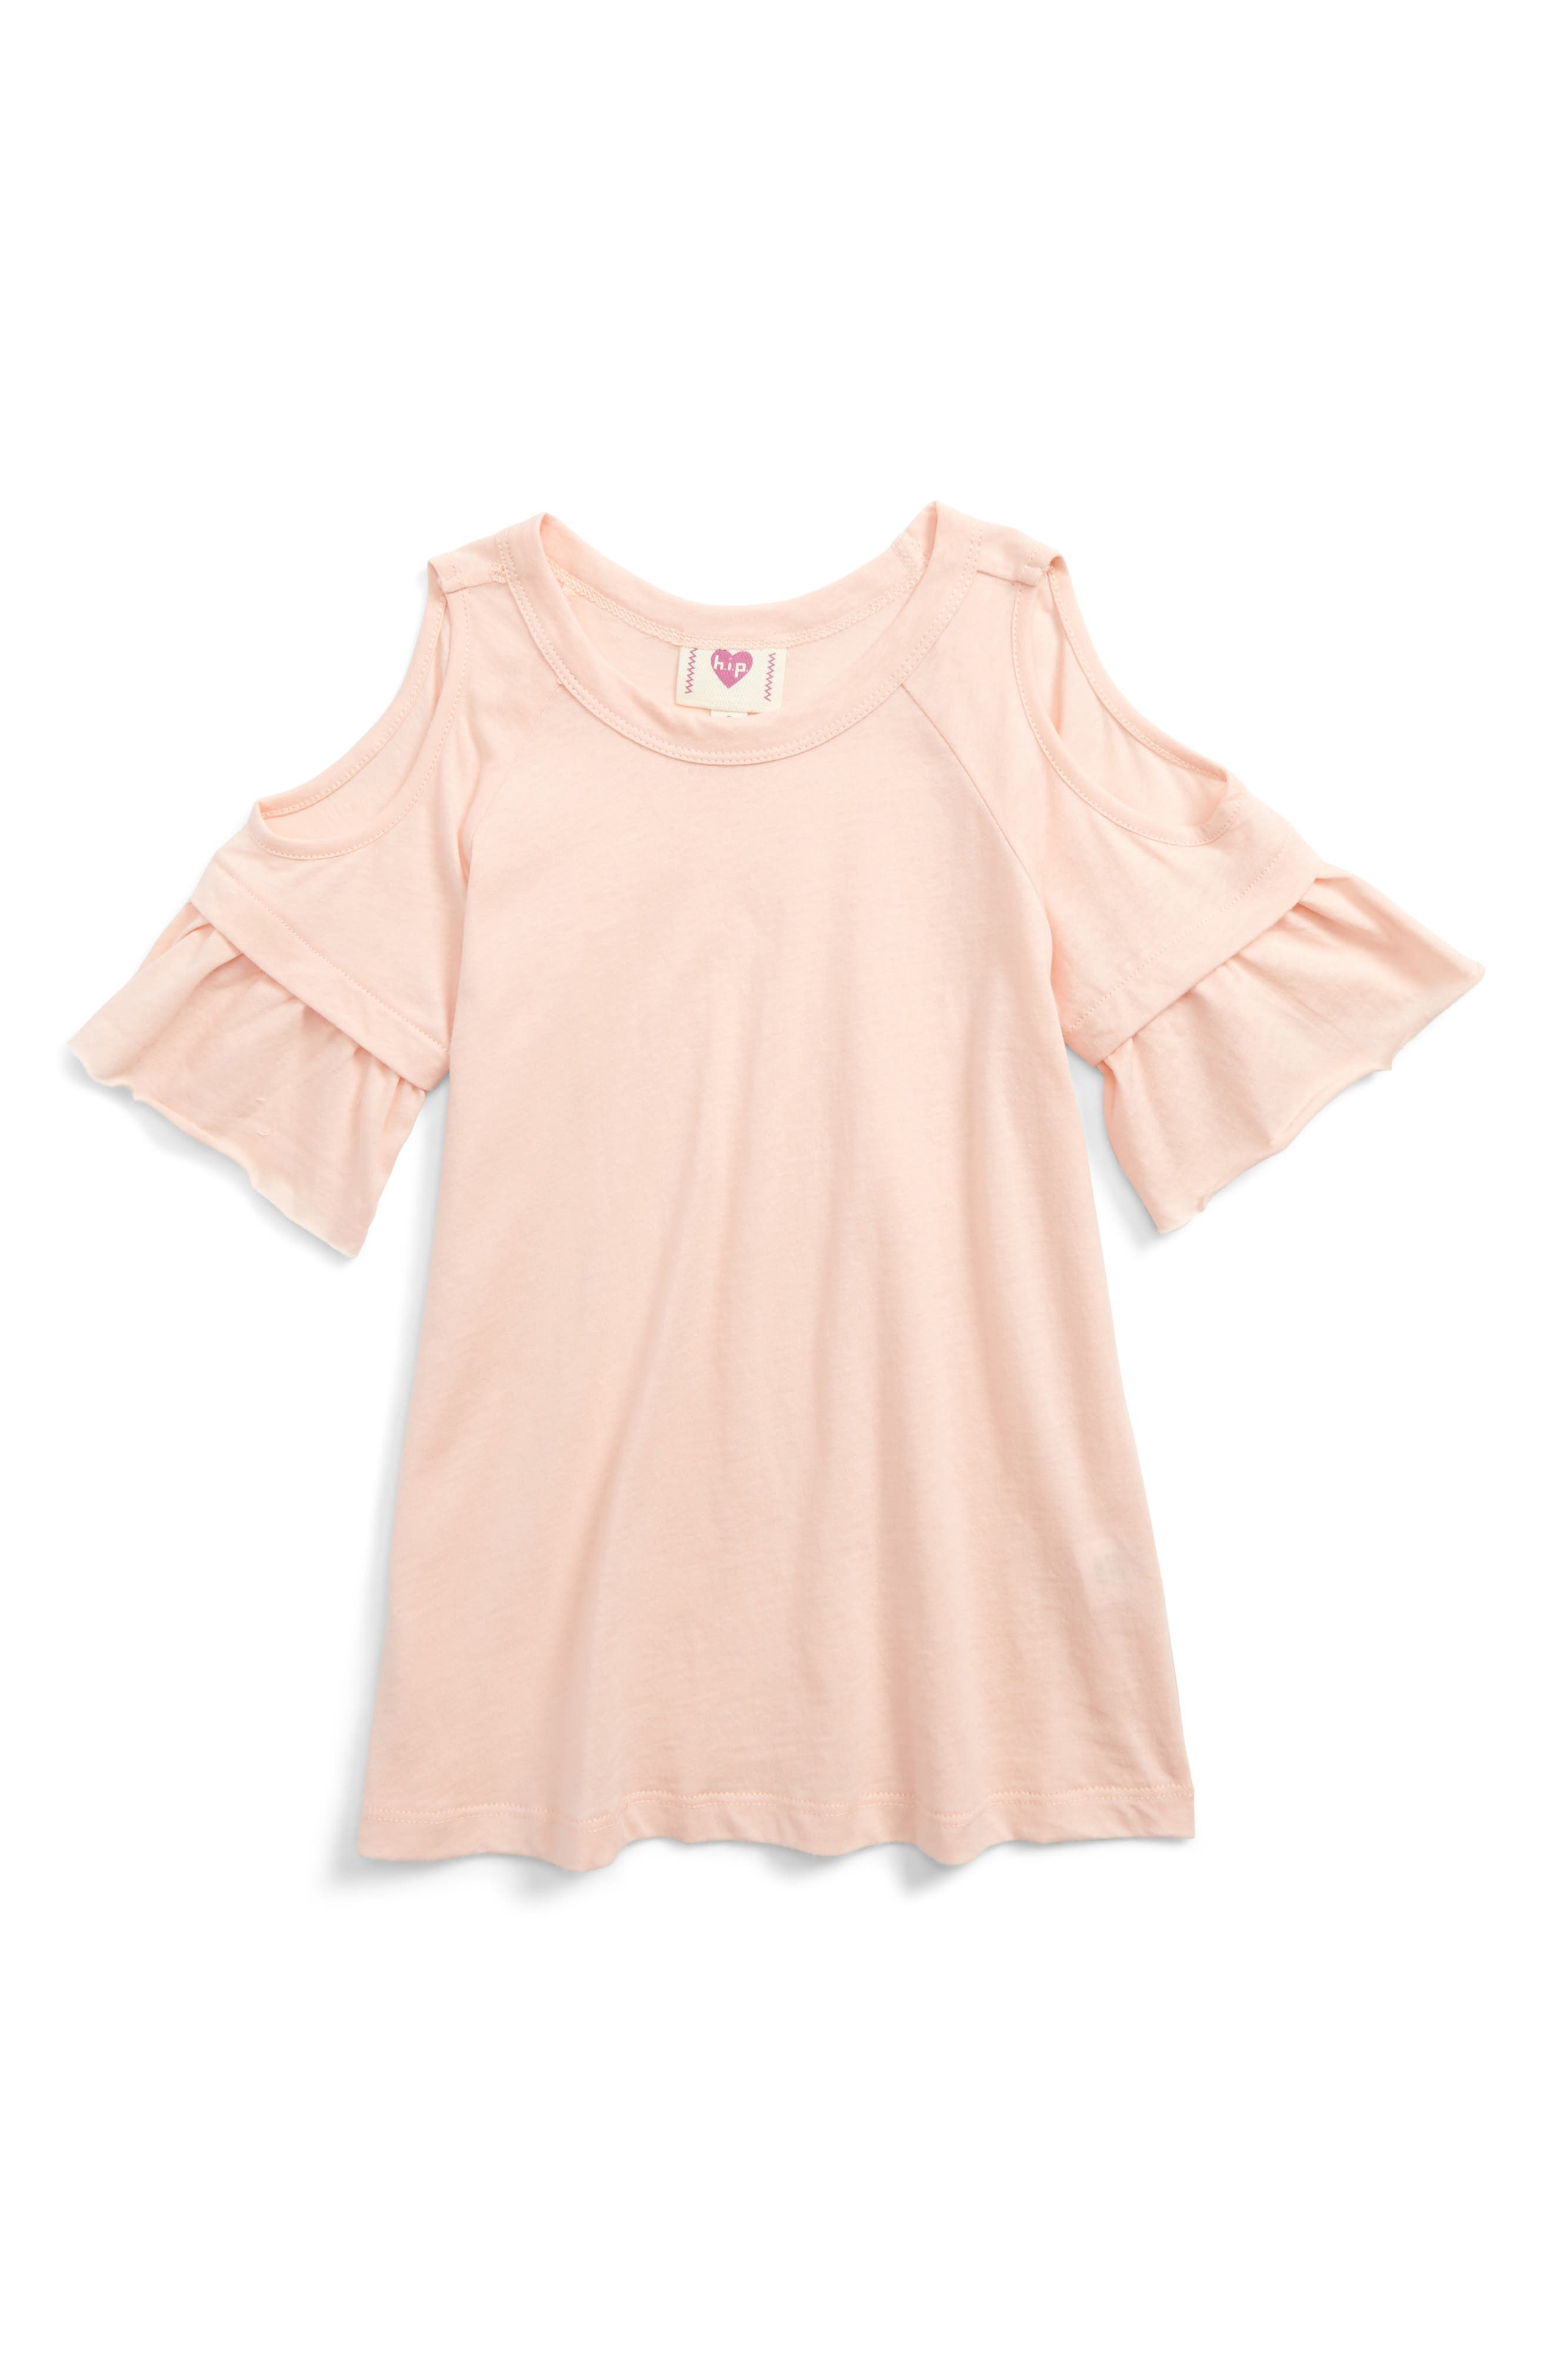 h.i.p. Flutter Sleeve Cold Shoulder Tee (Big Girls)